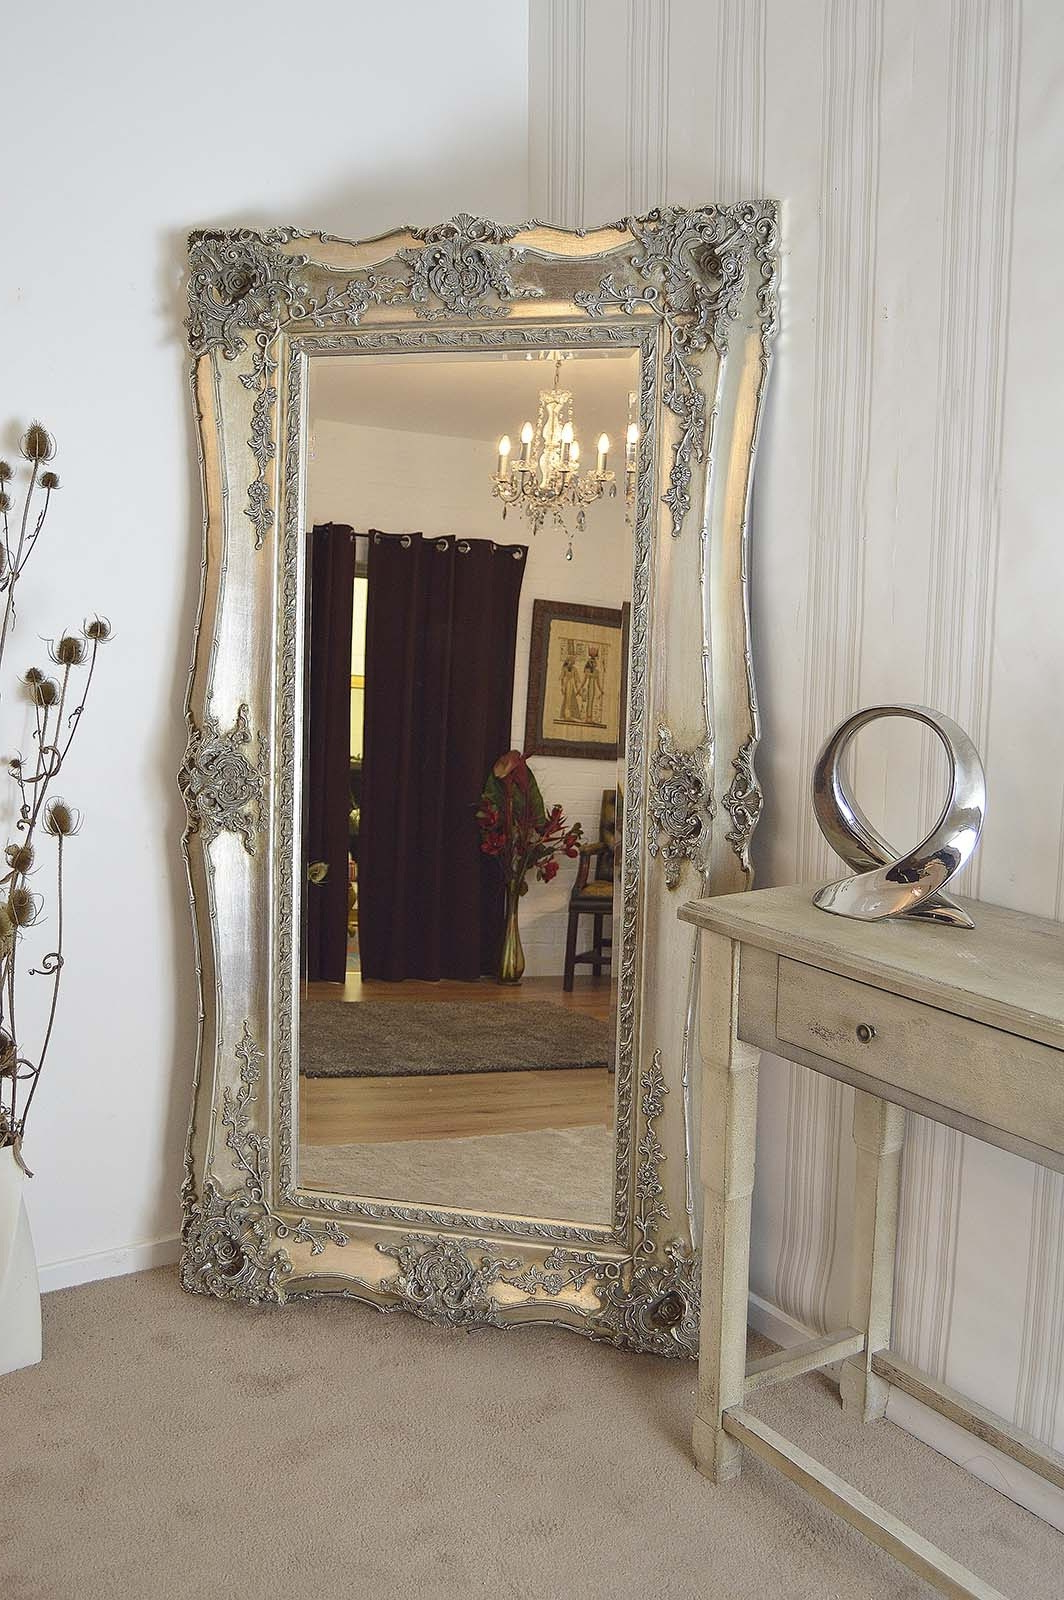 Popular Large Wall Mirrors For Cheap Intended For Large Wall Mirrors For Sale In Cheery Decorative Framed (View 14 of 20)